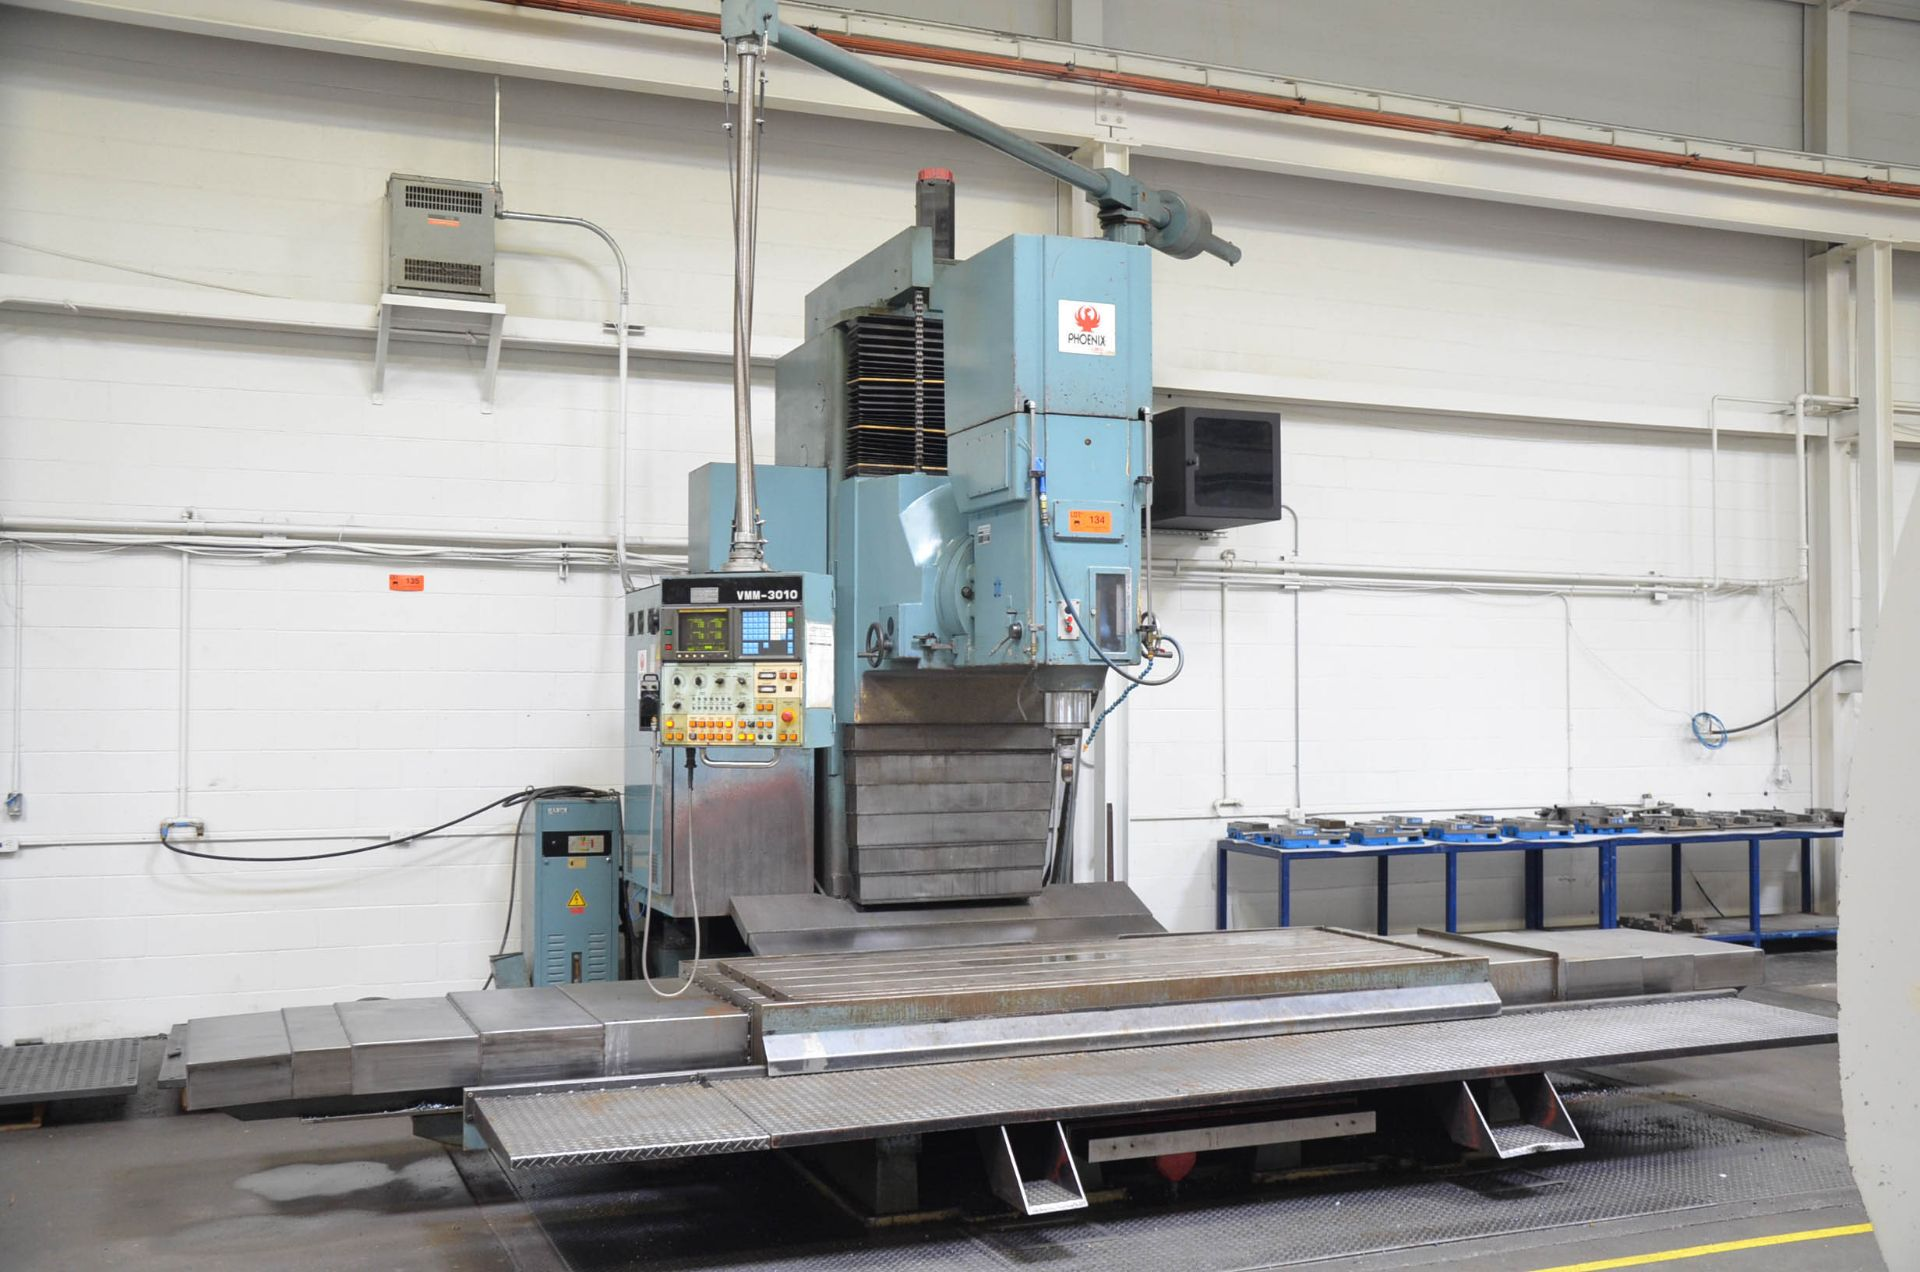 """KAFO VMM3010 CNC VERTICAL MILLING MACHINE WITH FANUC SERIES 15-M CNC CONTROL, 43""""X112"""" TABLE, - Image 2 of 6"""